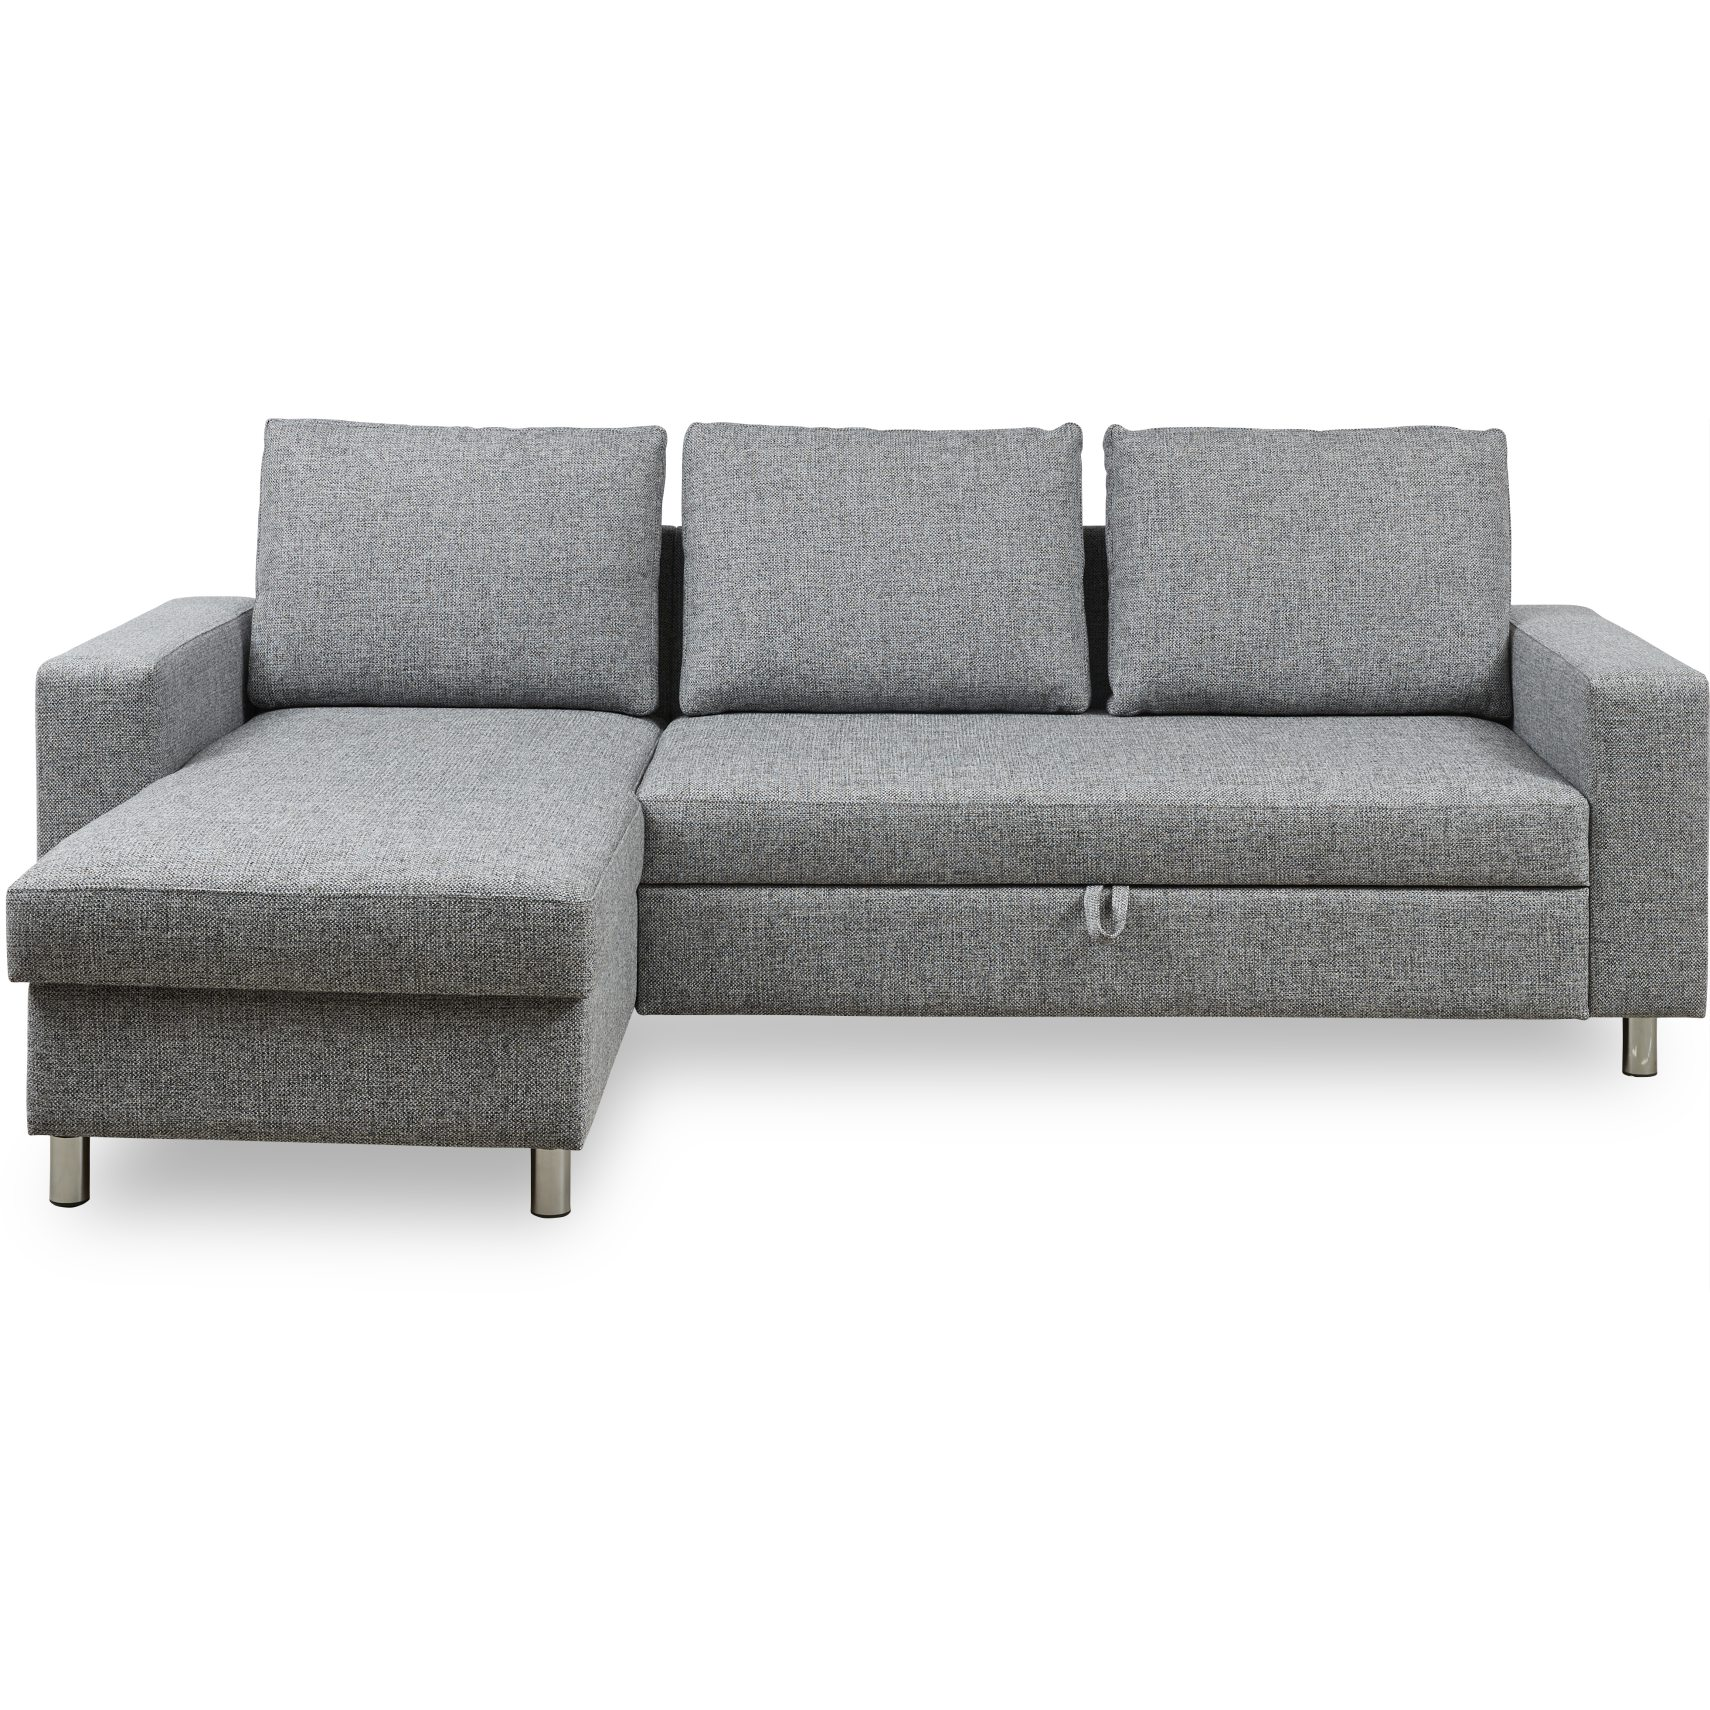 Devon Flex 250 Sovesofa - Riviera 53 Light Grey stof, Armlæn 1+1 og S: Pocket R: Dun/fiberkugler